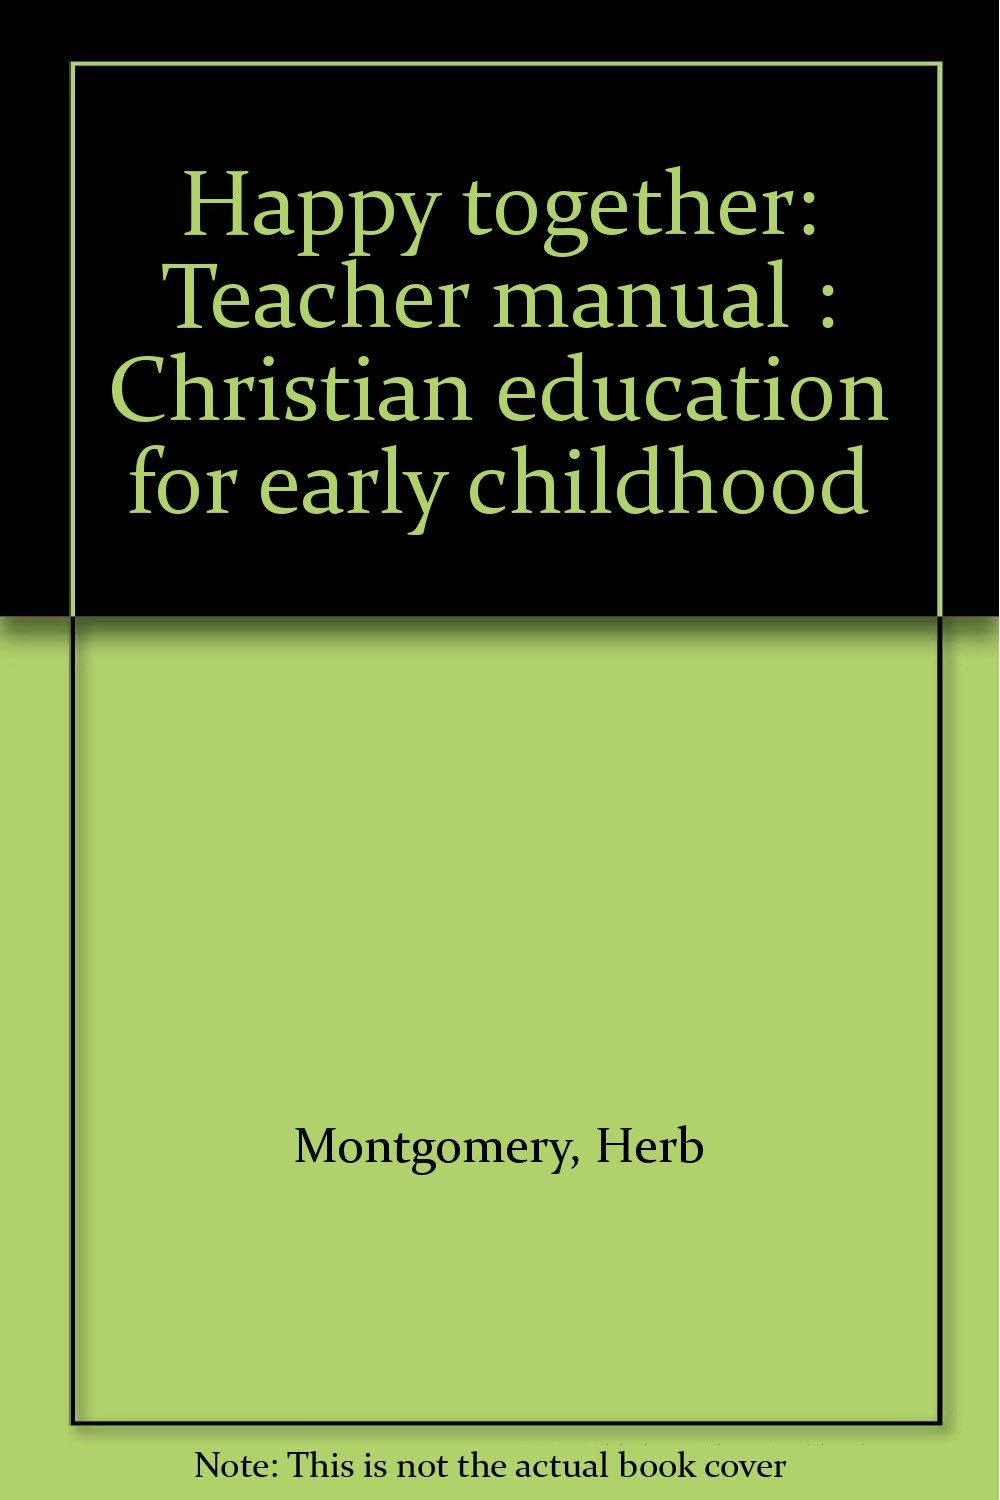 Happy together: Teacher manual : Christian education for early childhood:  Herb Montgomery: 9780062538178: Amazon.com: Books